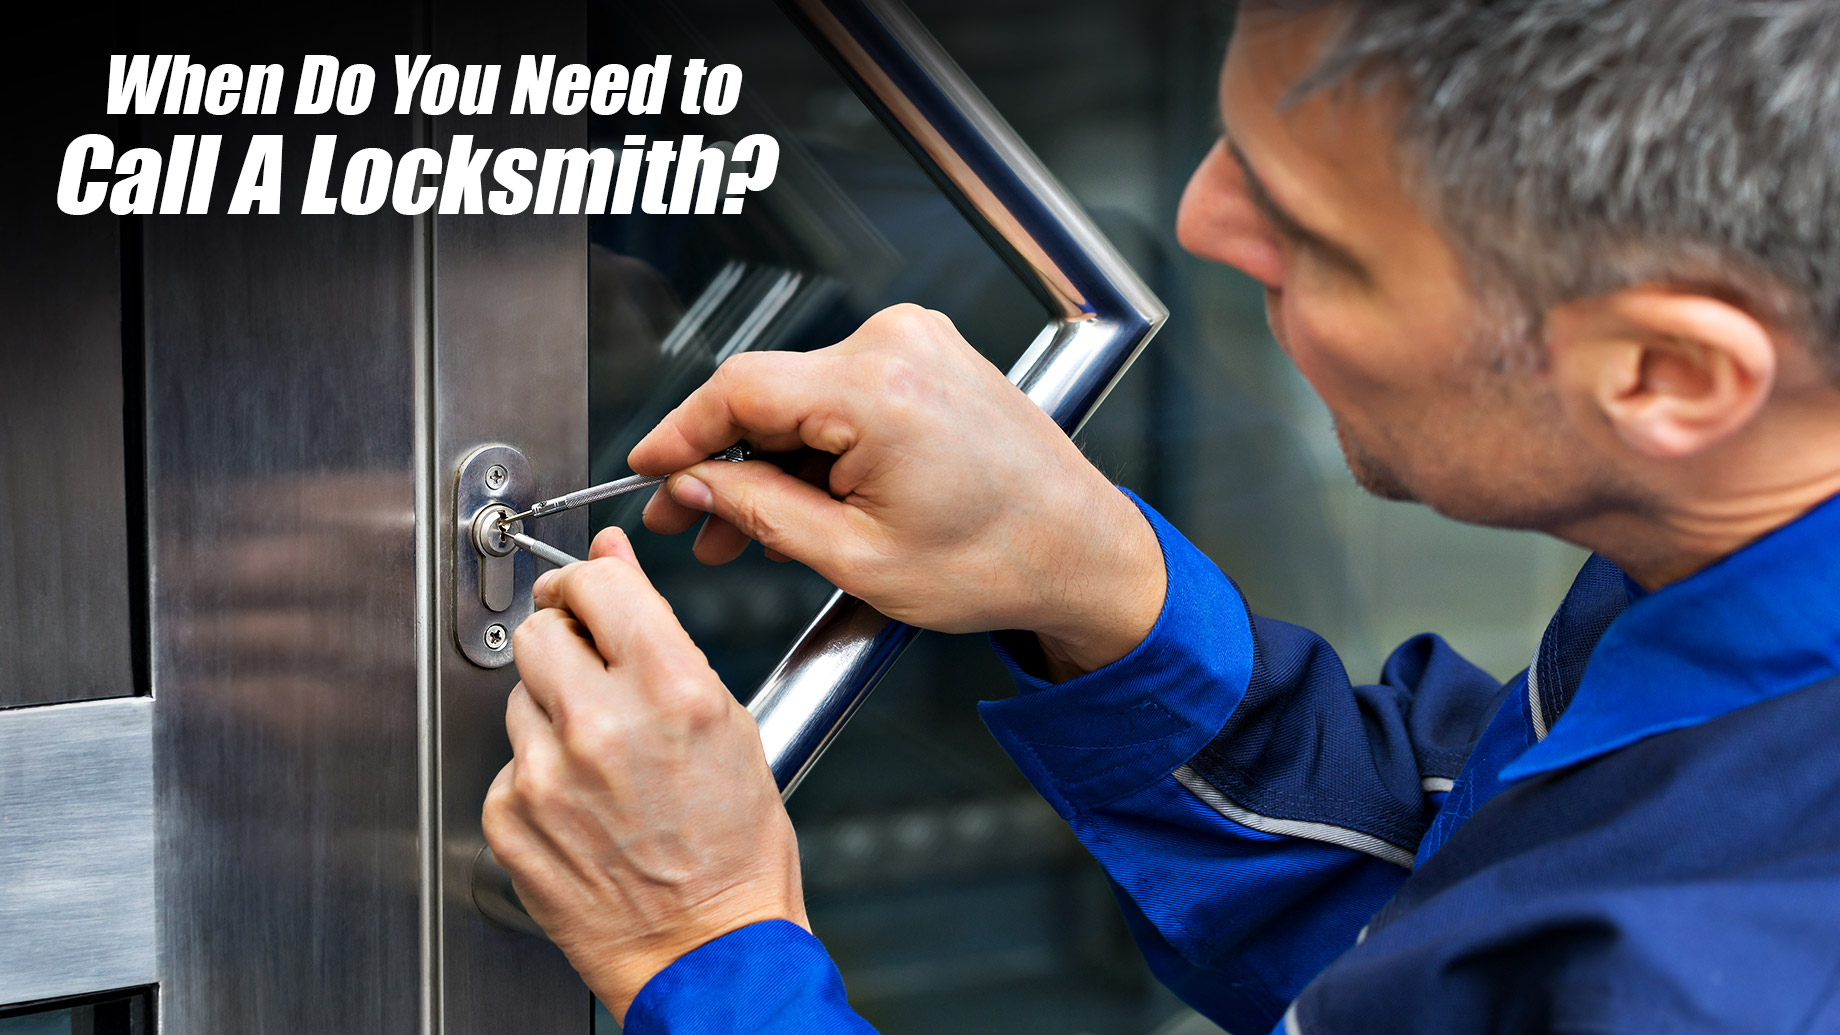 When Do You Need to Call A Locksmith?